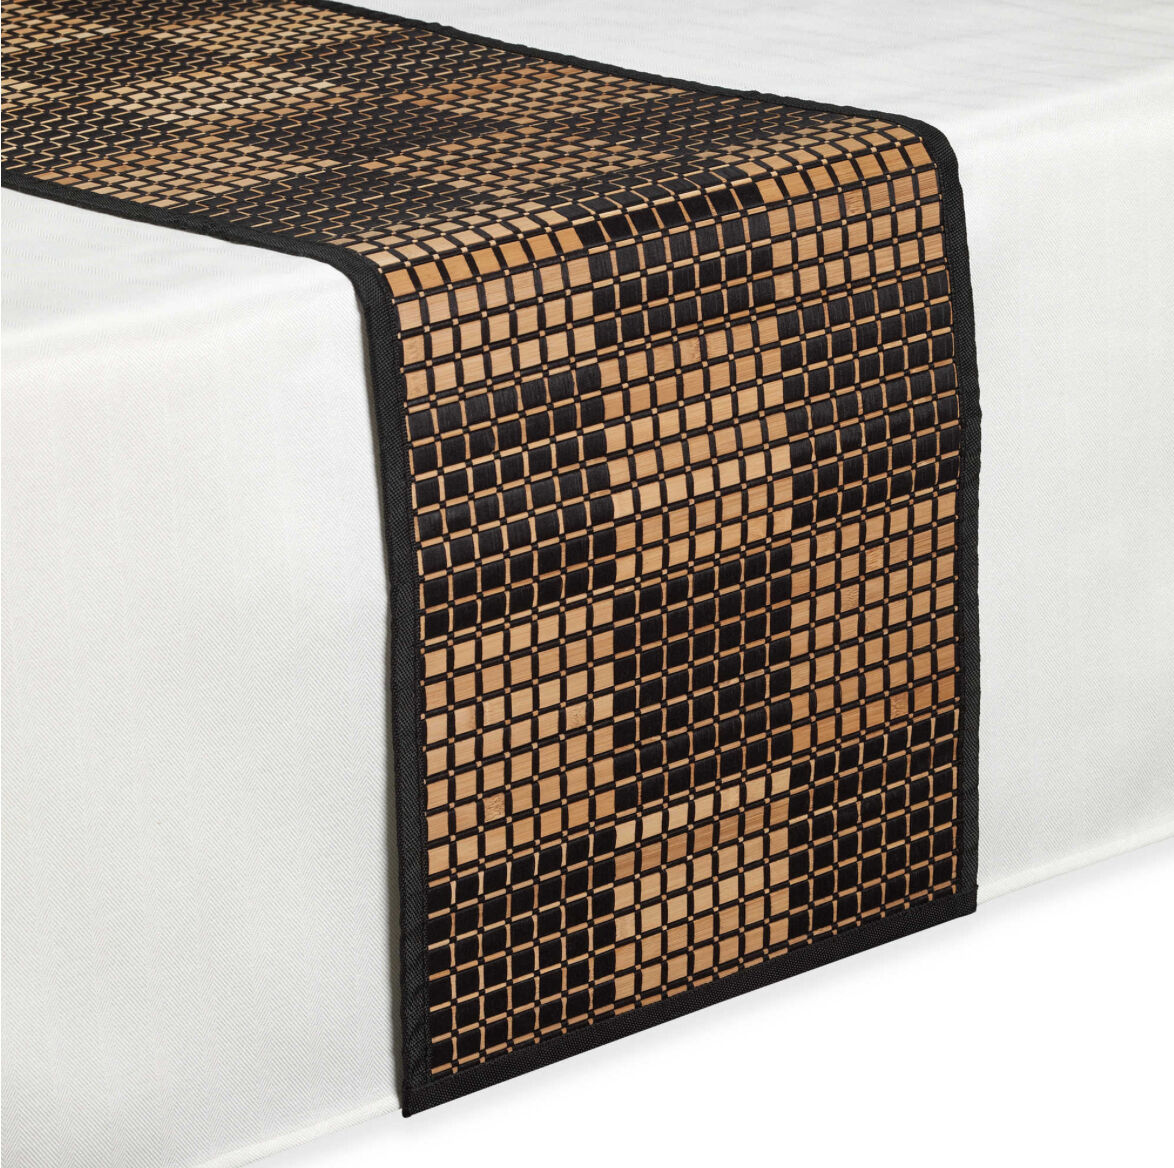 Bamboo black table runner 72 inches checkered kitchen linen dining -